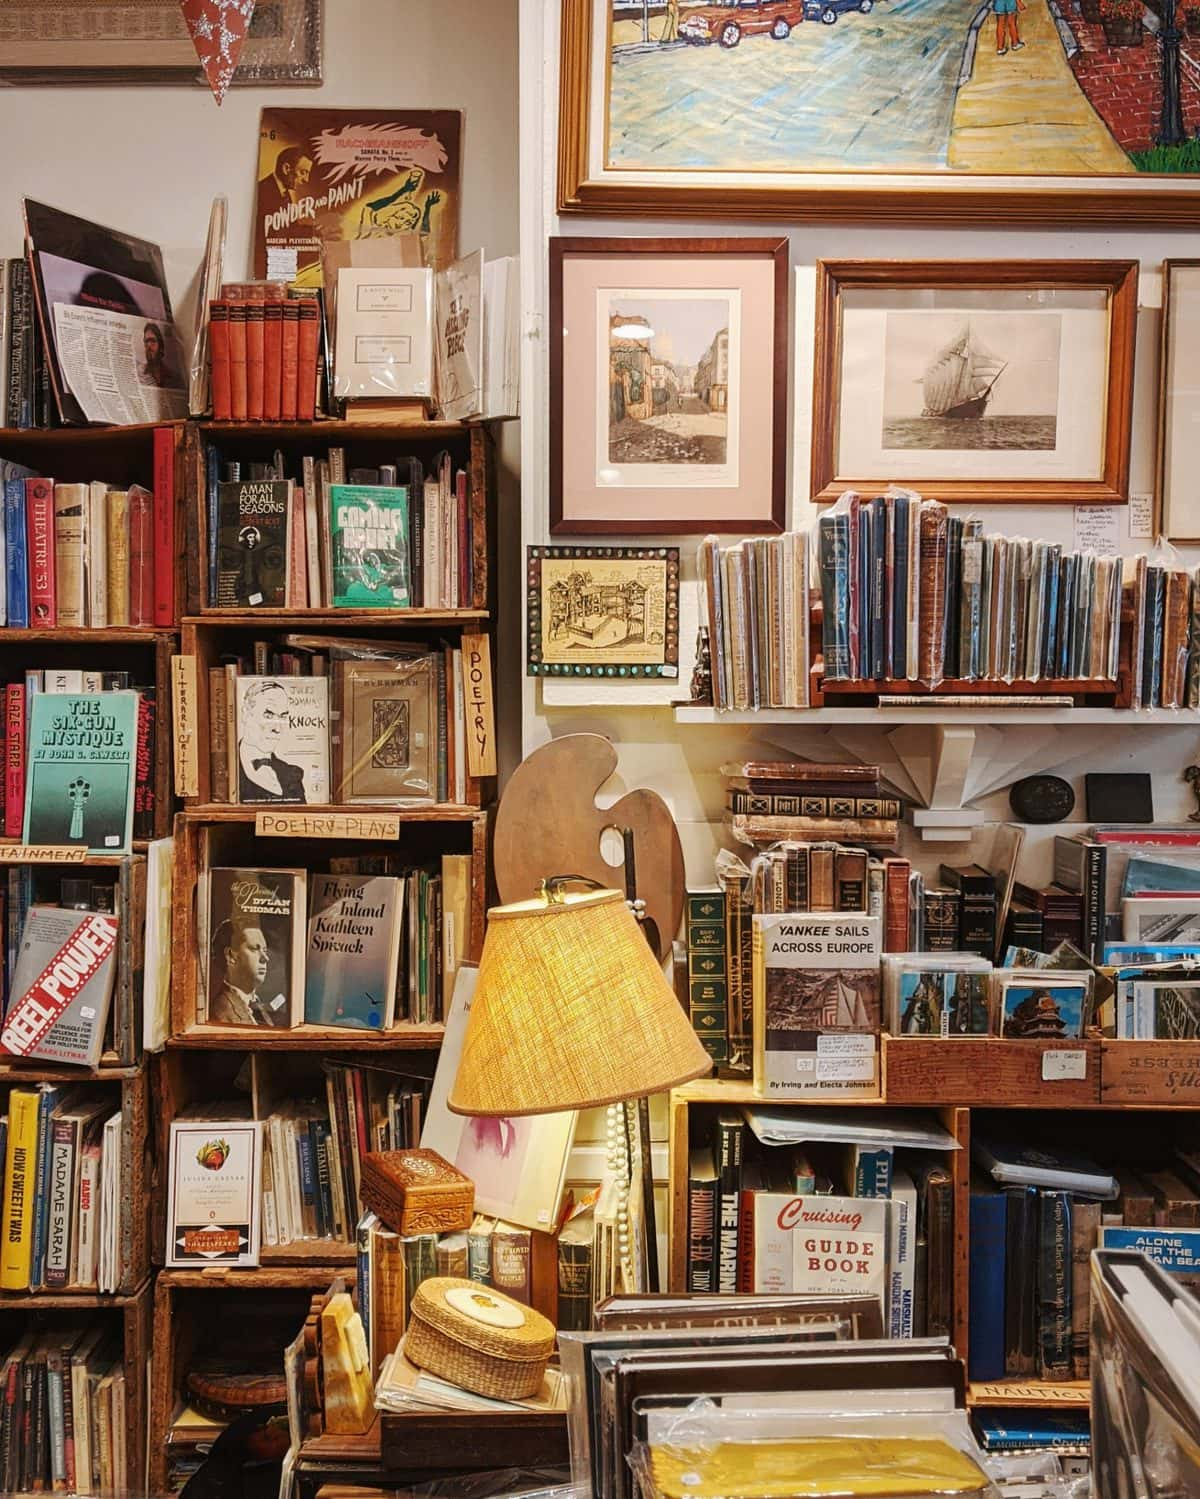 Vintage bookstore with shelves of old books and old paintings